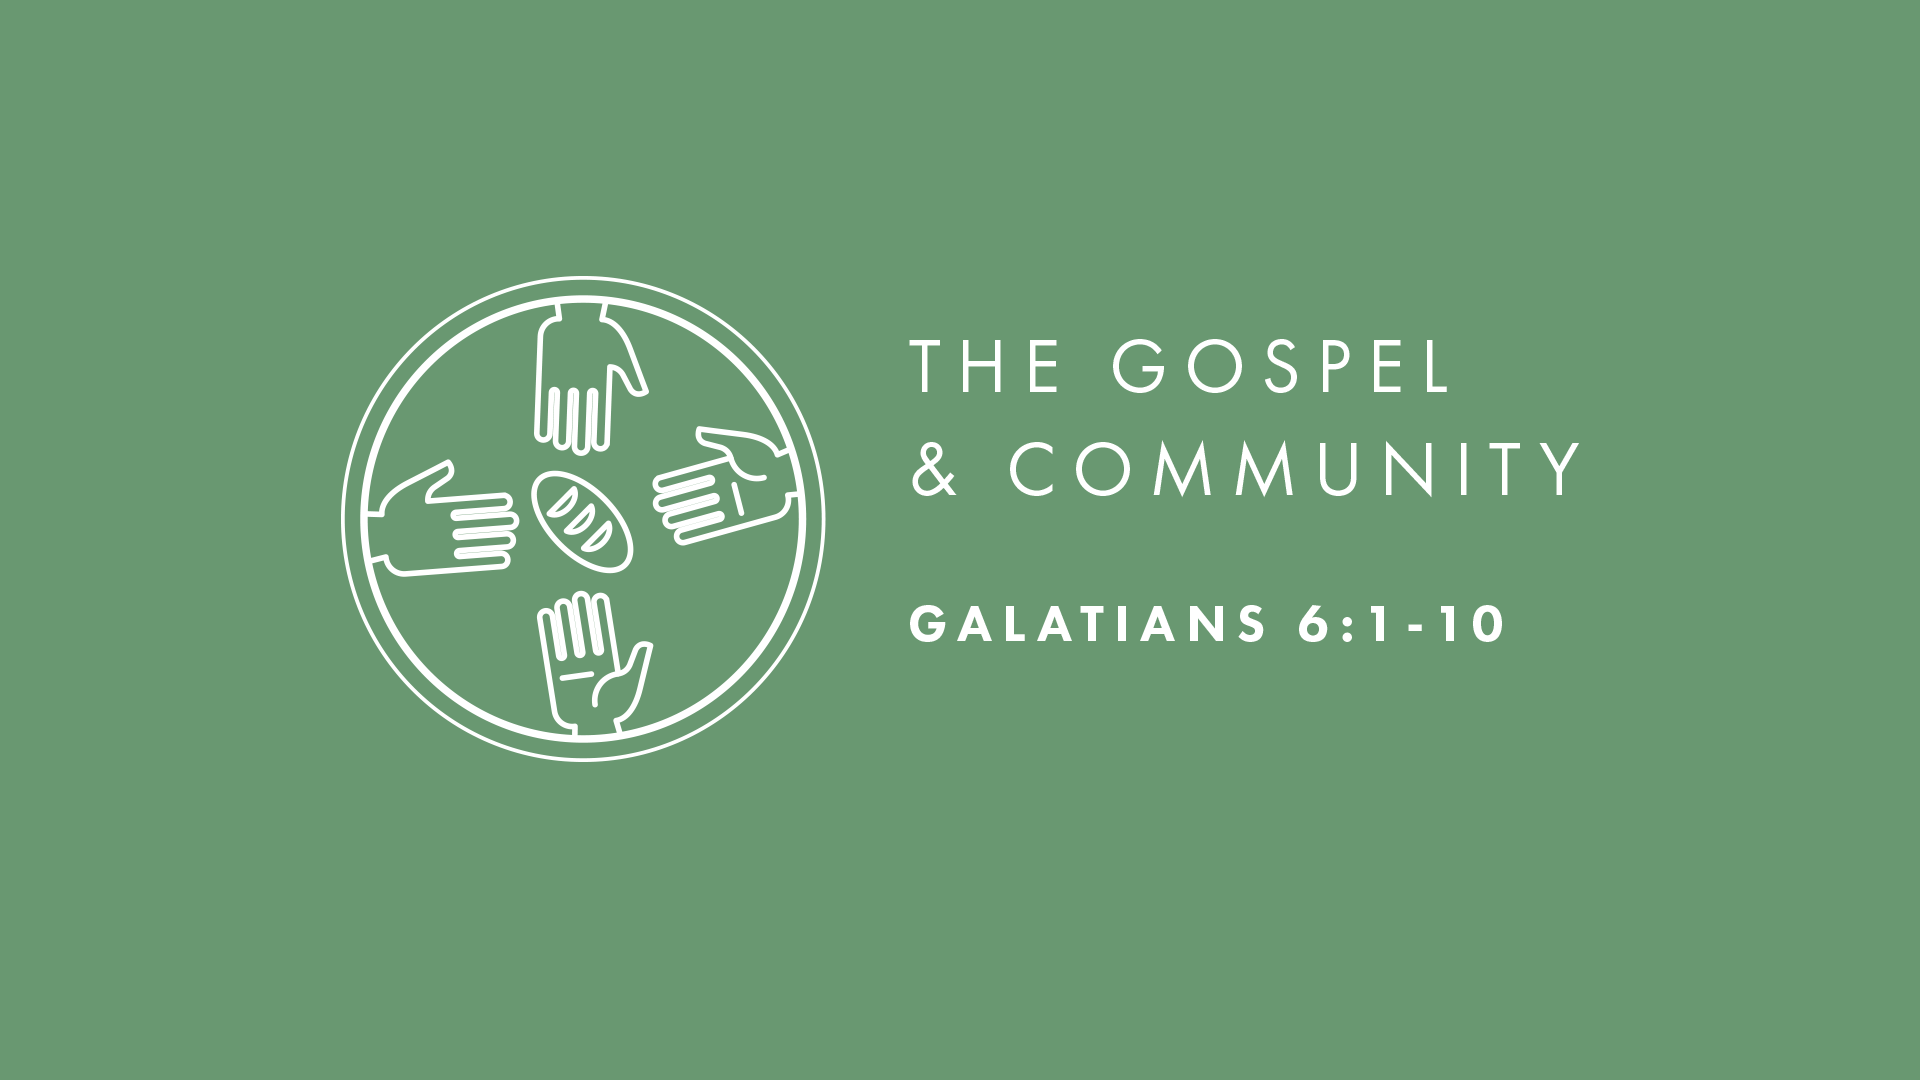 The Gospel and Community